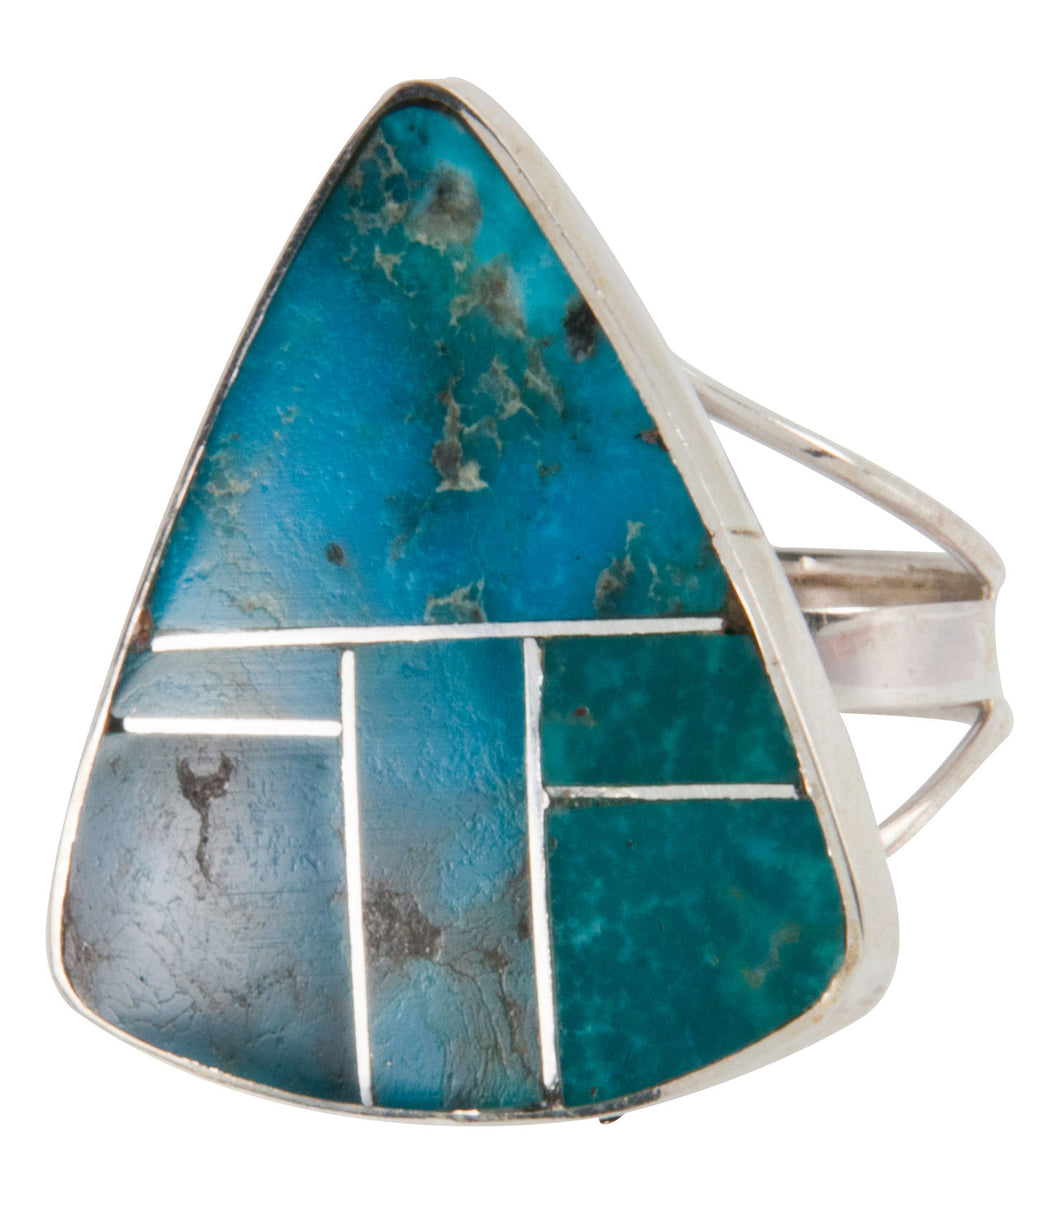 Navajo Native American Turquoise Mountain Turquoise Ring Size 8 3/4 SKU228069